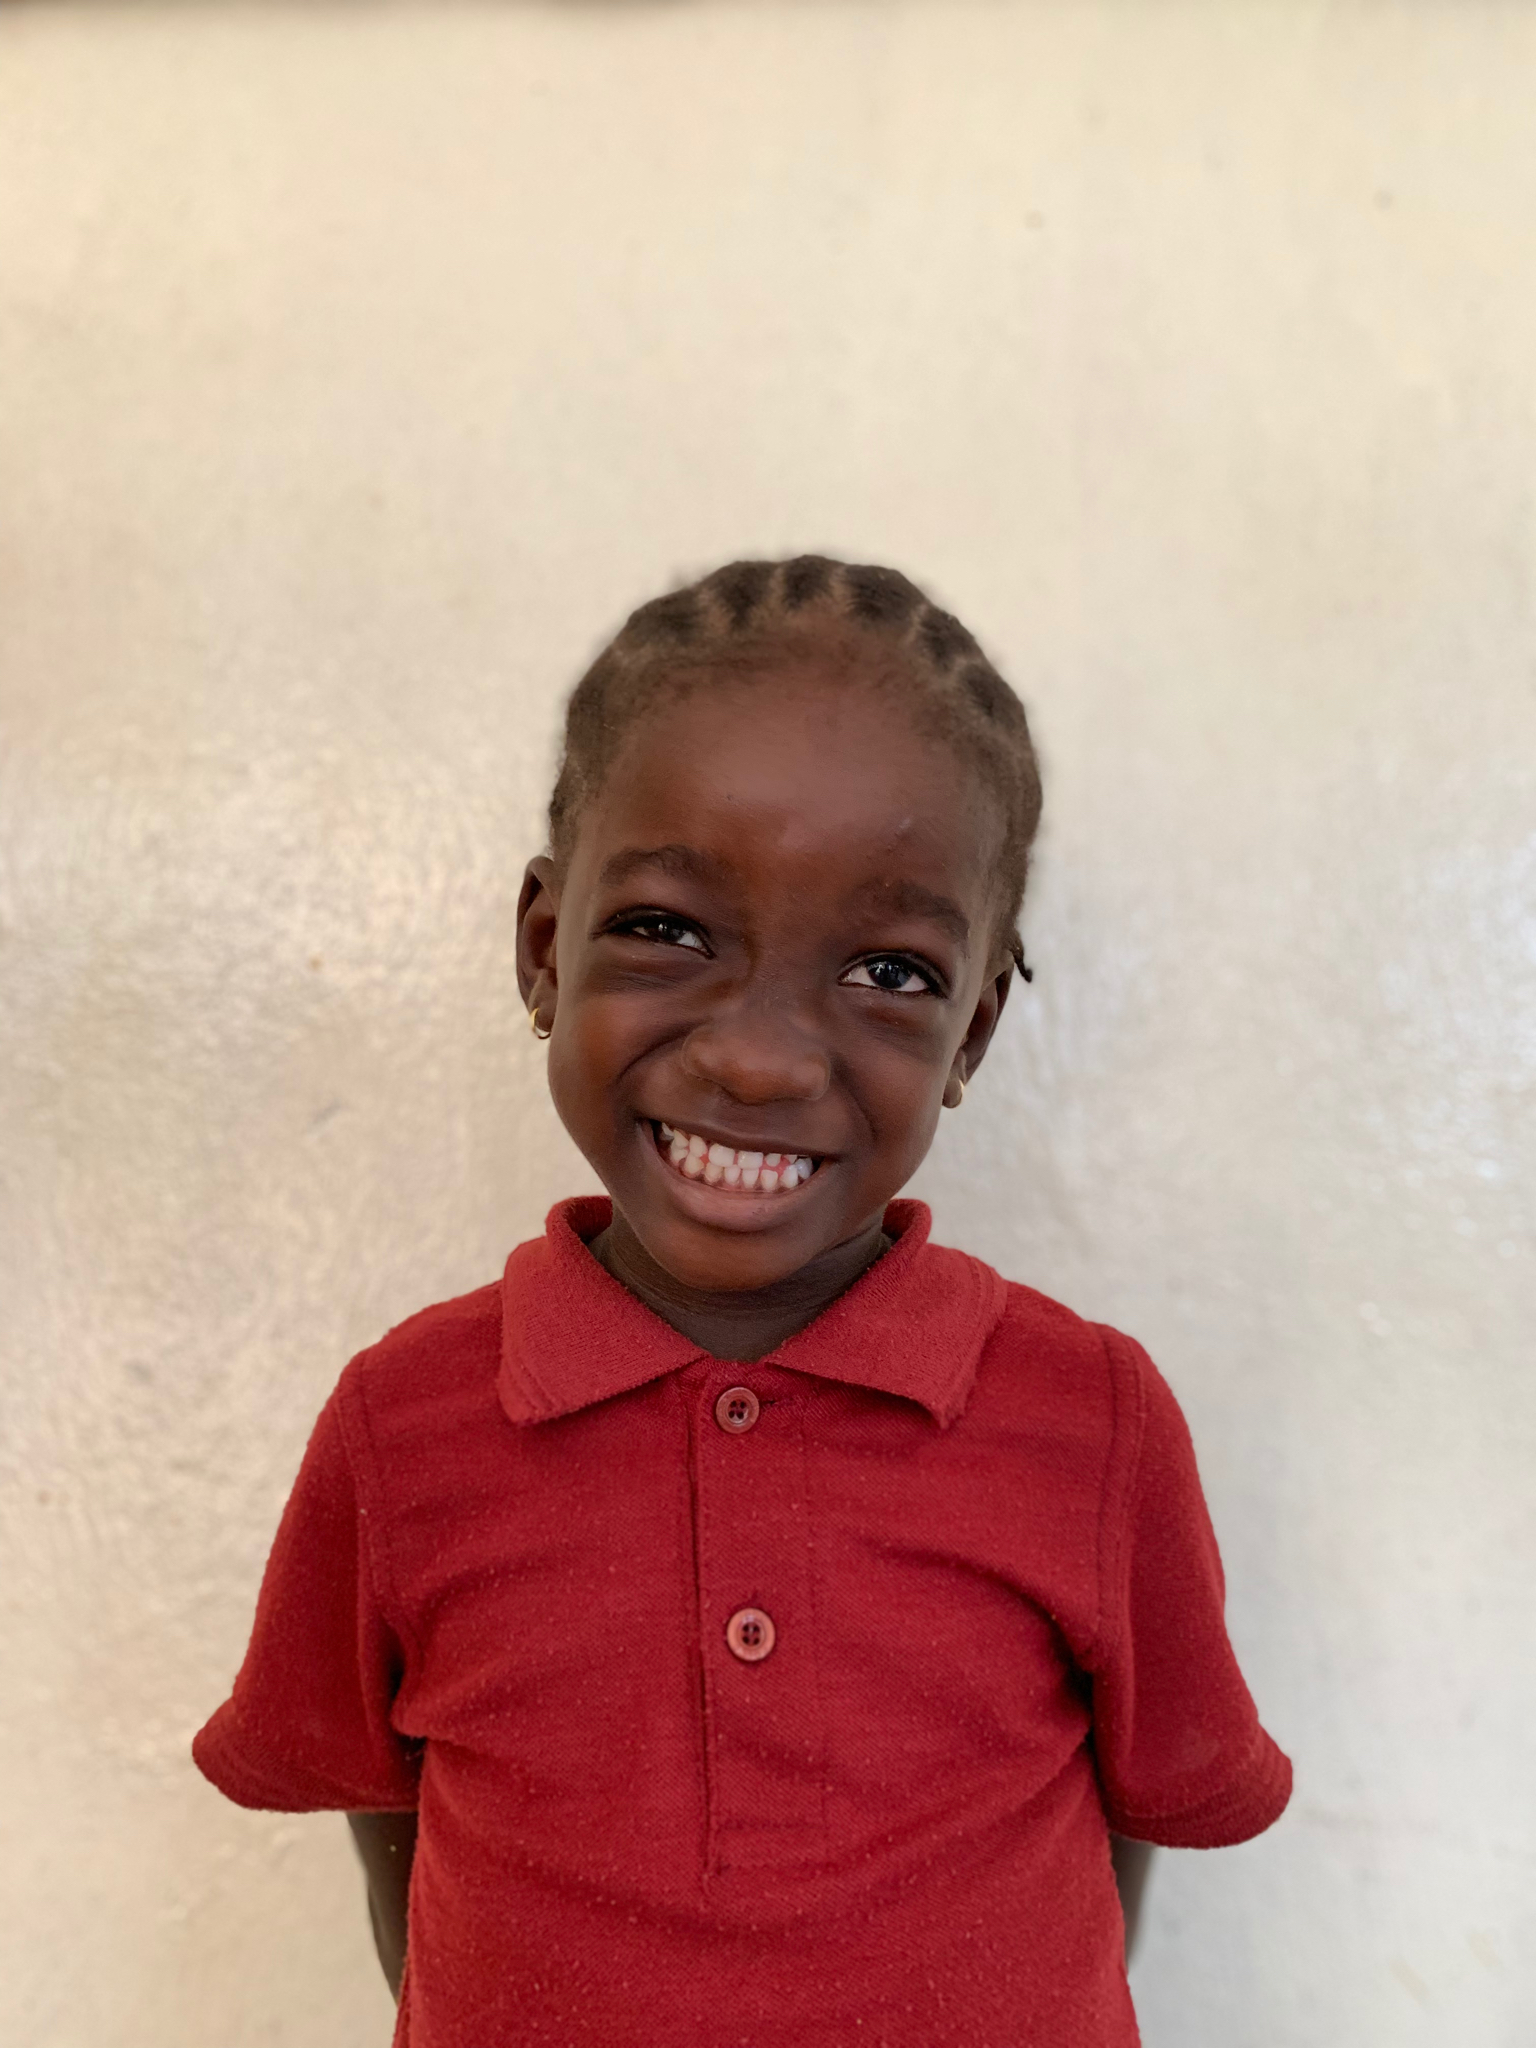 Hello, my name is Blessing Summer. - Blessing is a 4-year-old girl.Blessing lives with her grandmother; and loves dear, playing soccer, and colors in a rainbow.